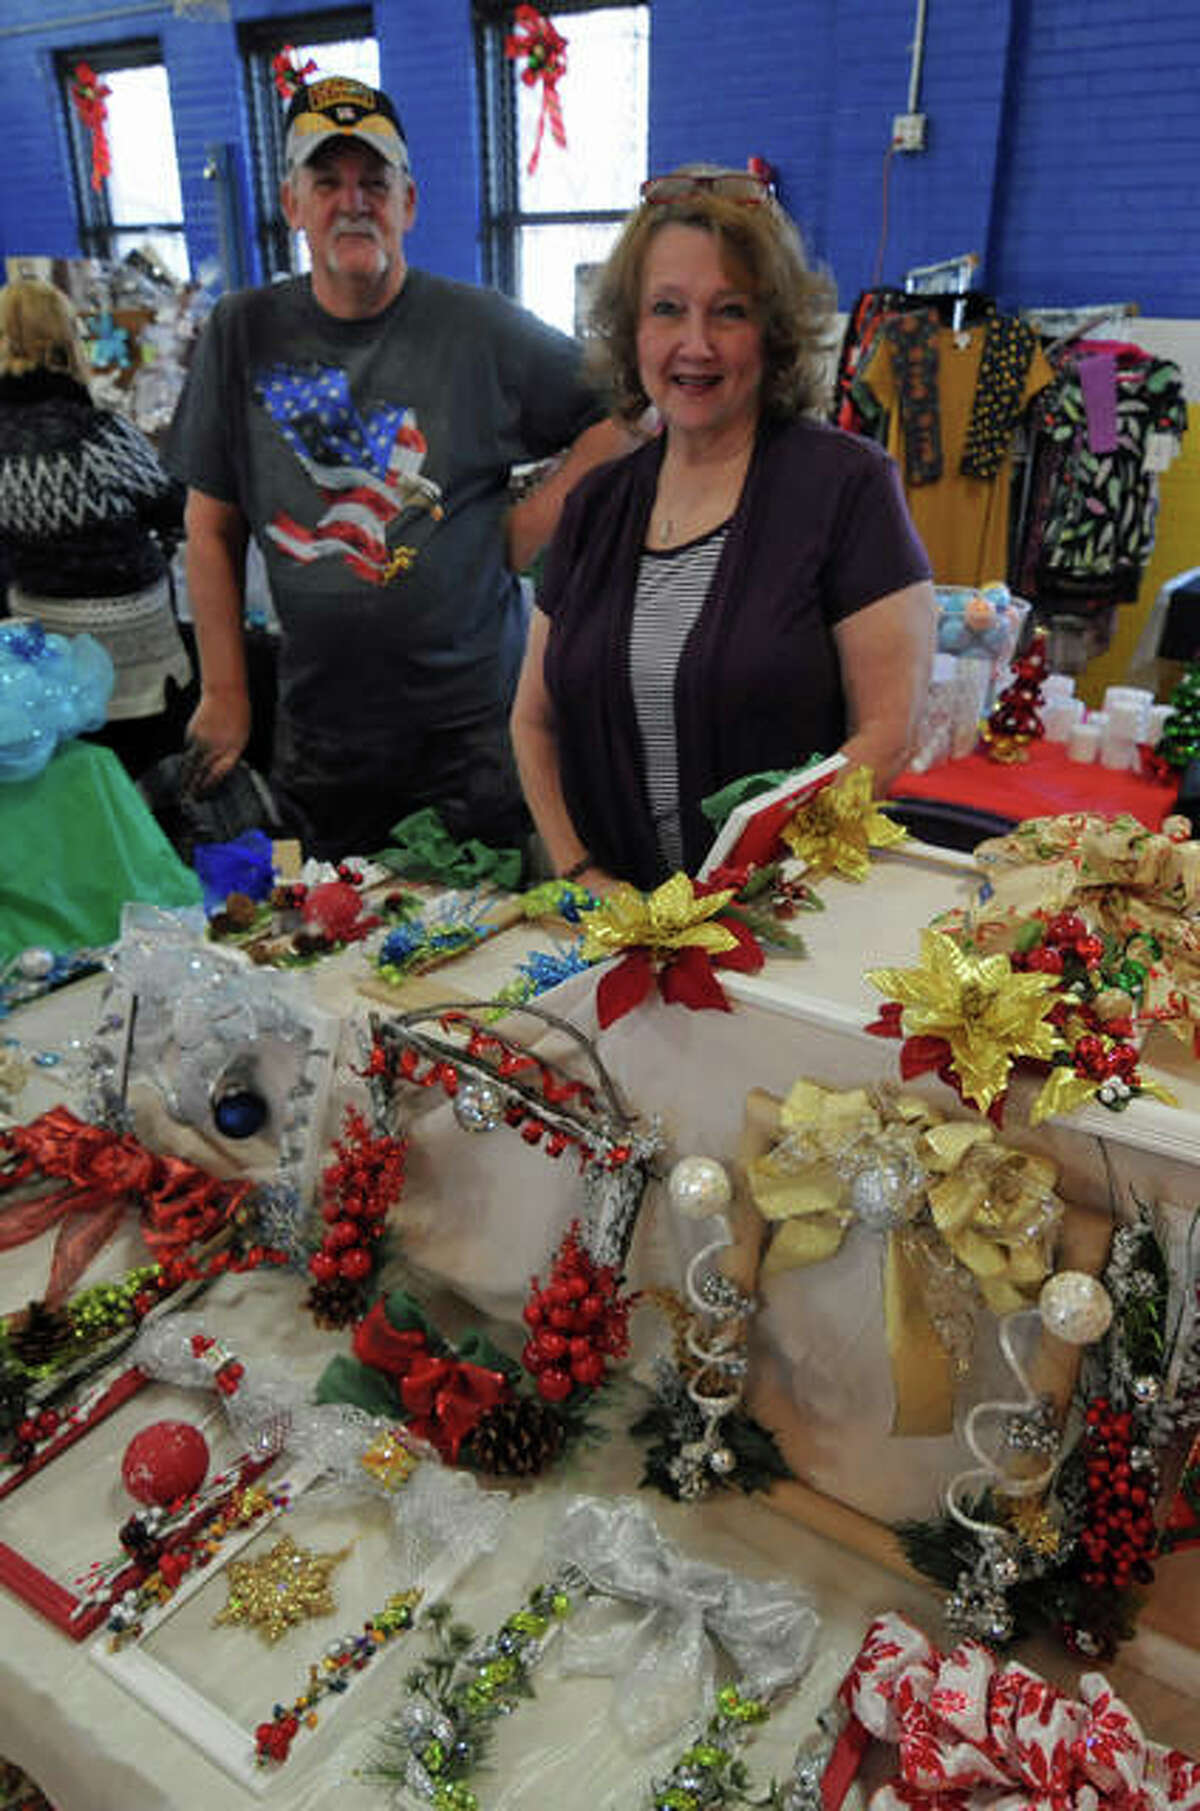 Bill Davis and Chris Eardley and their picture frame wreaths at the Old Cathedral Bazaar.